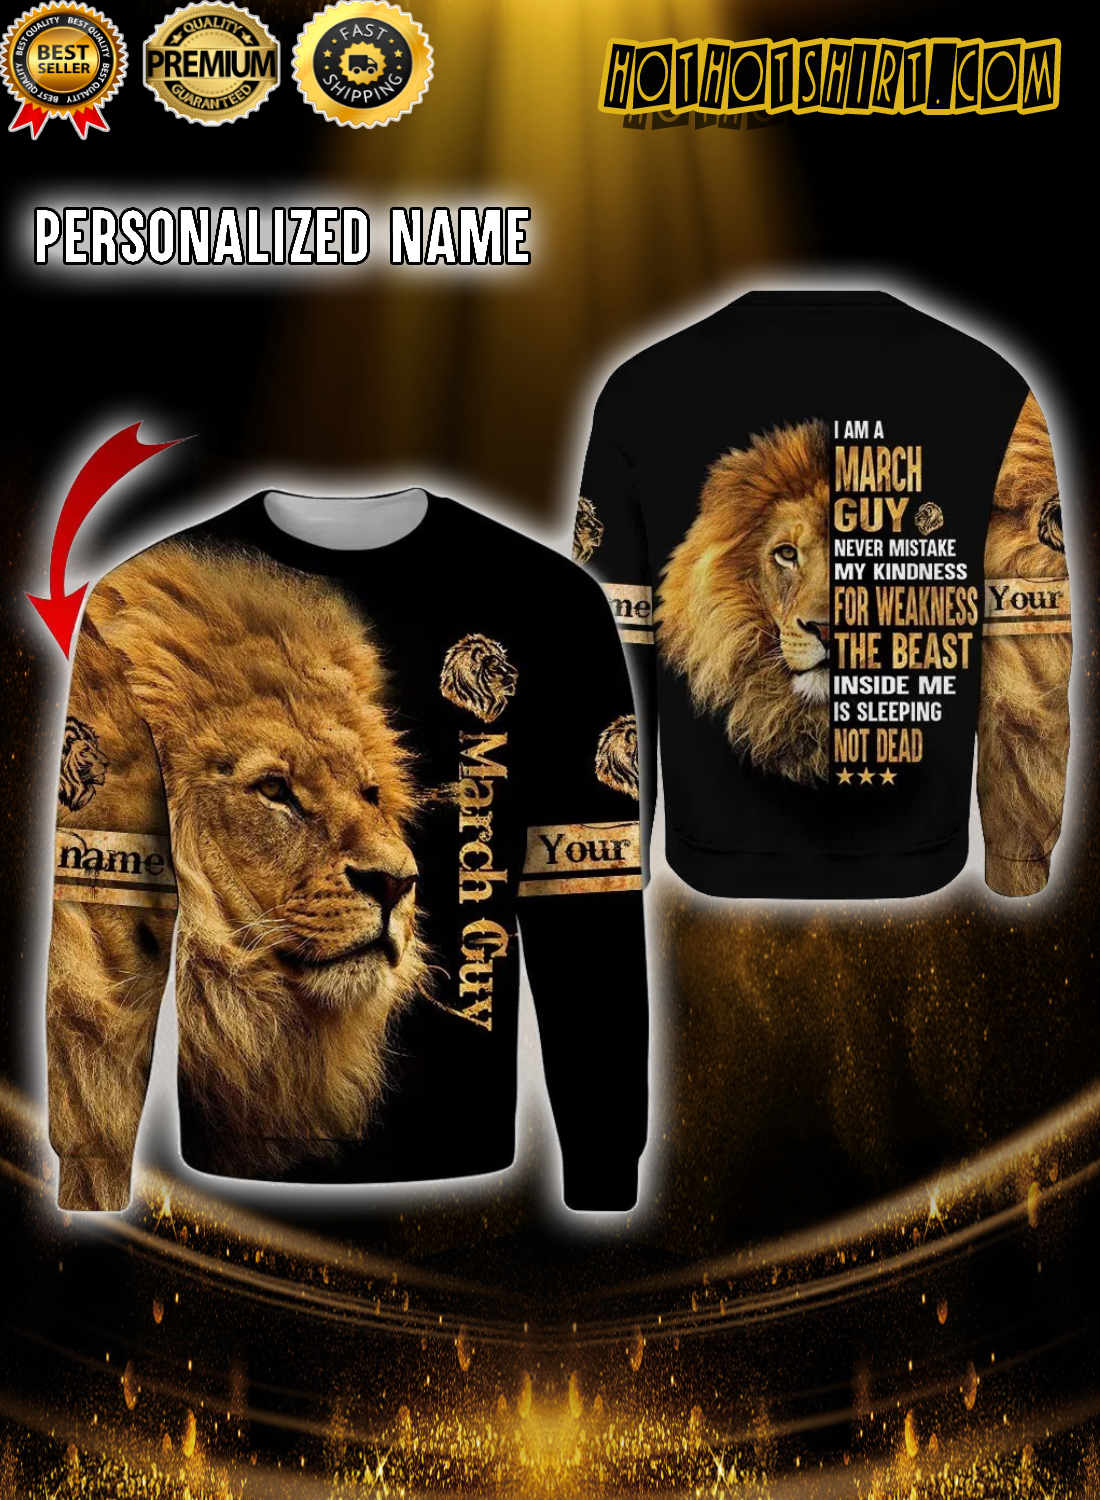 Personalized Name Lion I am a march guy never mistake my kindness 3D Hoodie 1